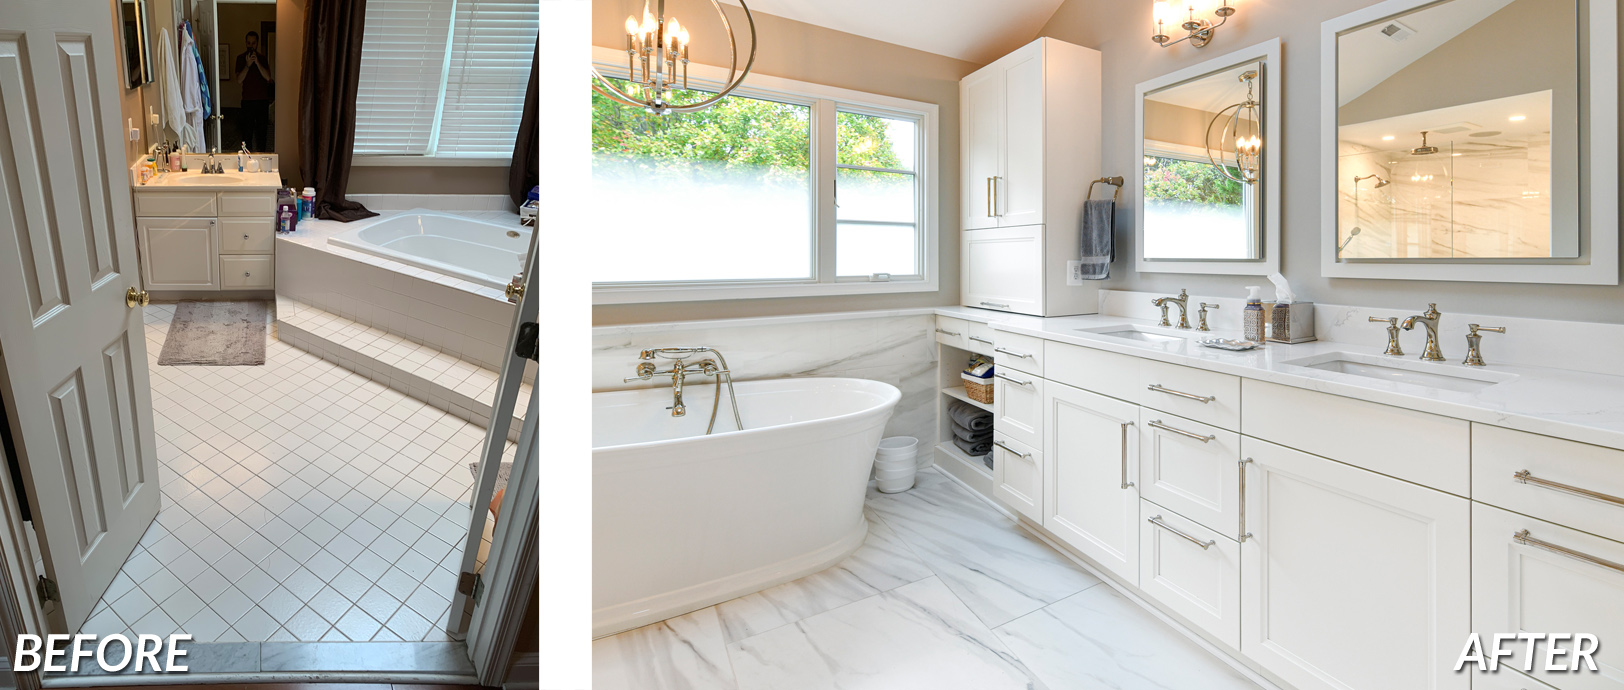 BOWA Design Build - Great Falls Master Bath Renovation Before & After